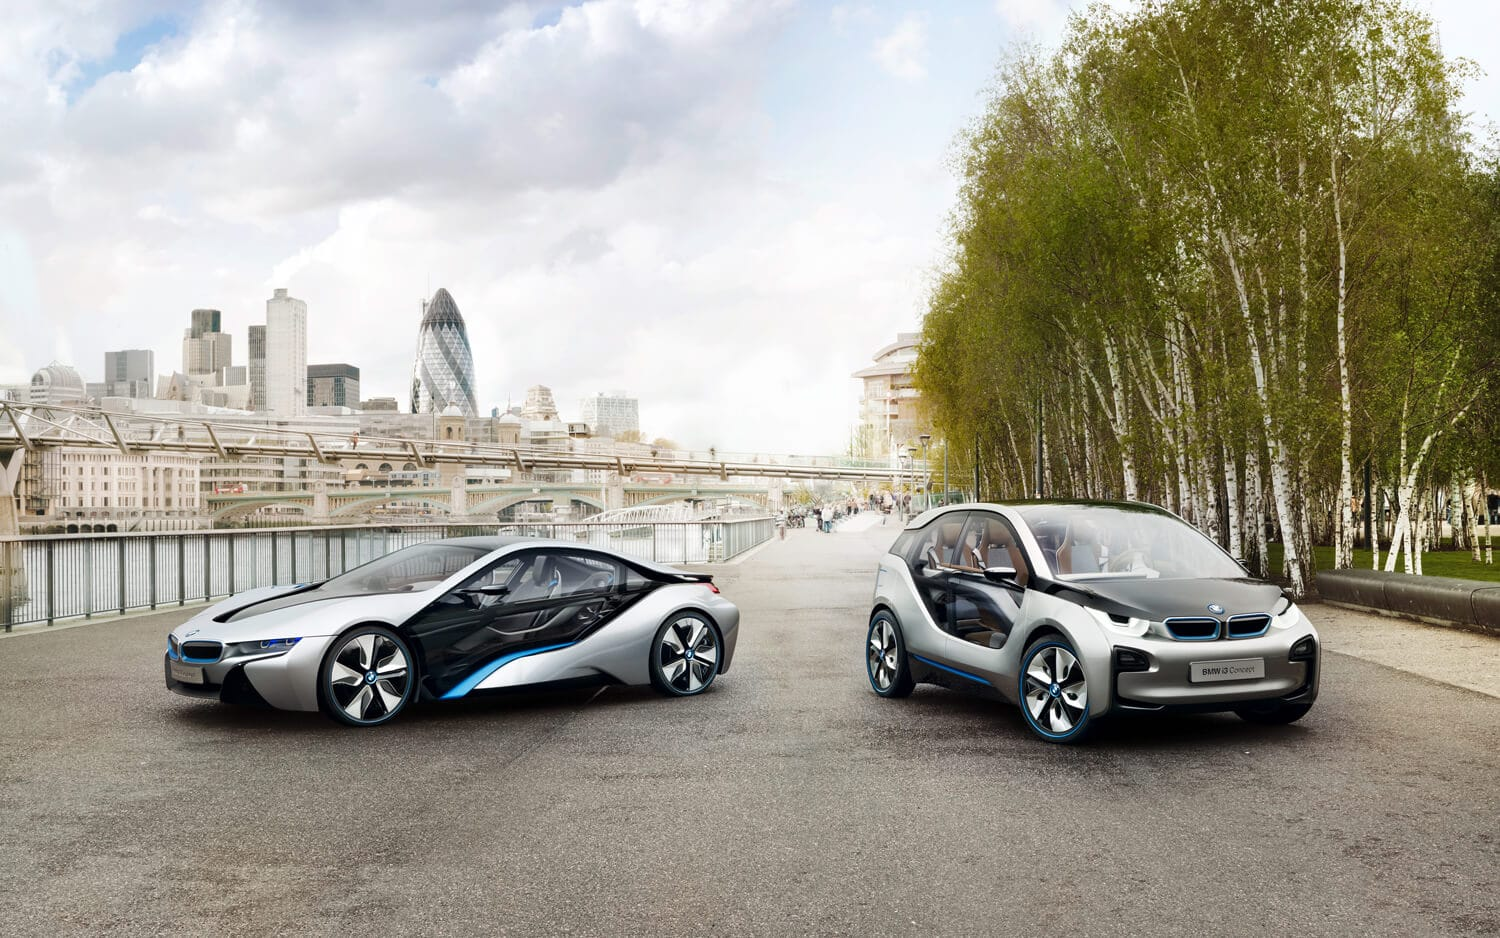 5 Hybrid Cars That Will Make You Say 'WOW'!